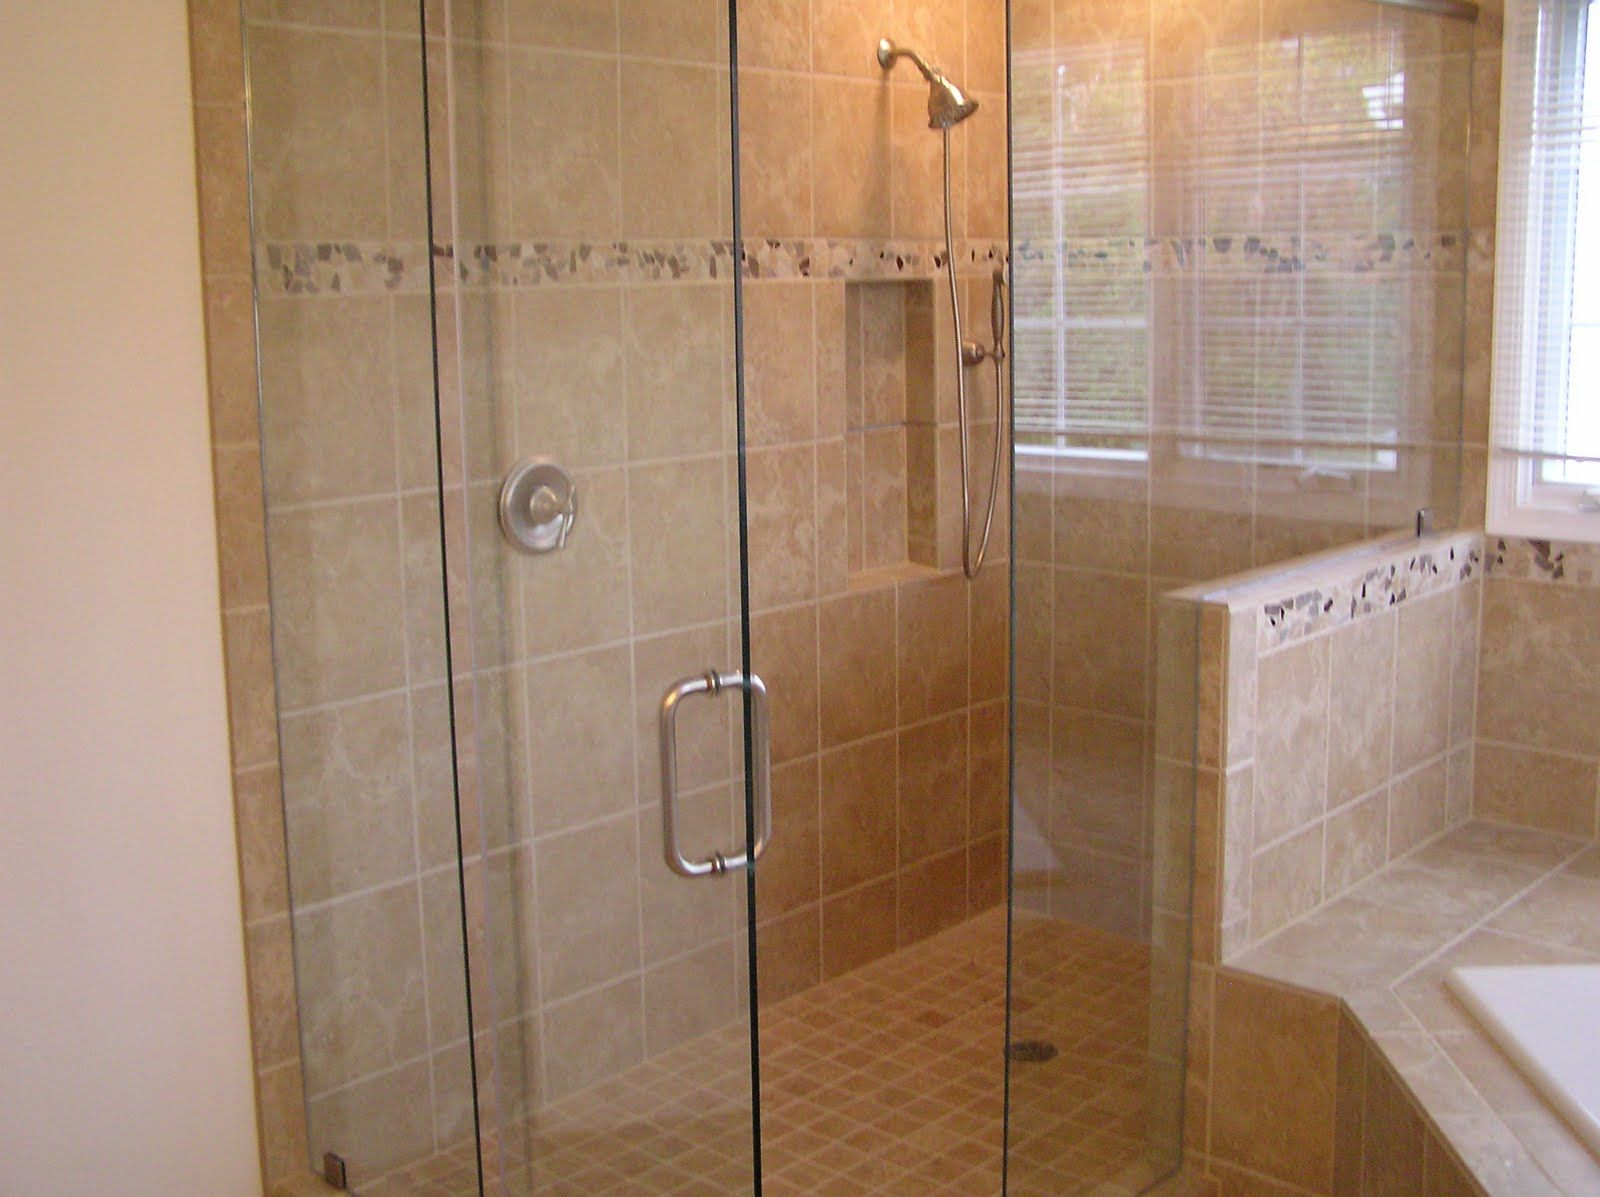 bathroom tile designs ideas bathroom shower - Tile Design Ideas For Bathrooms